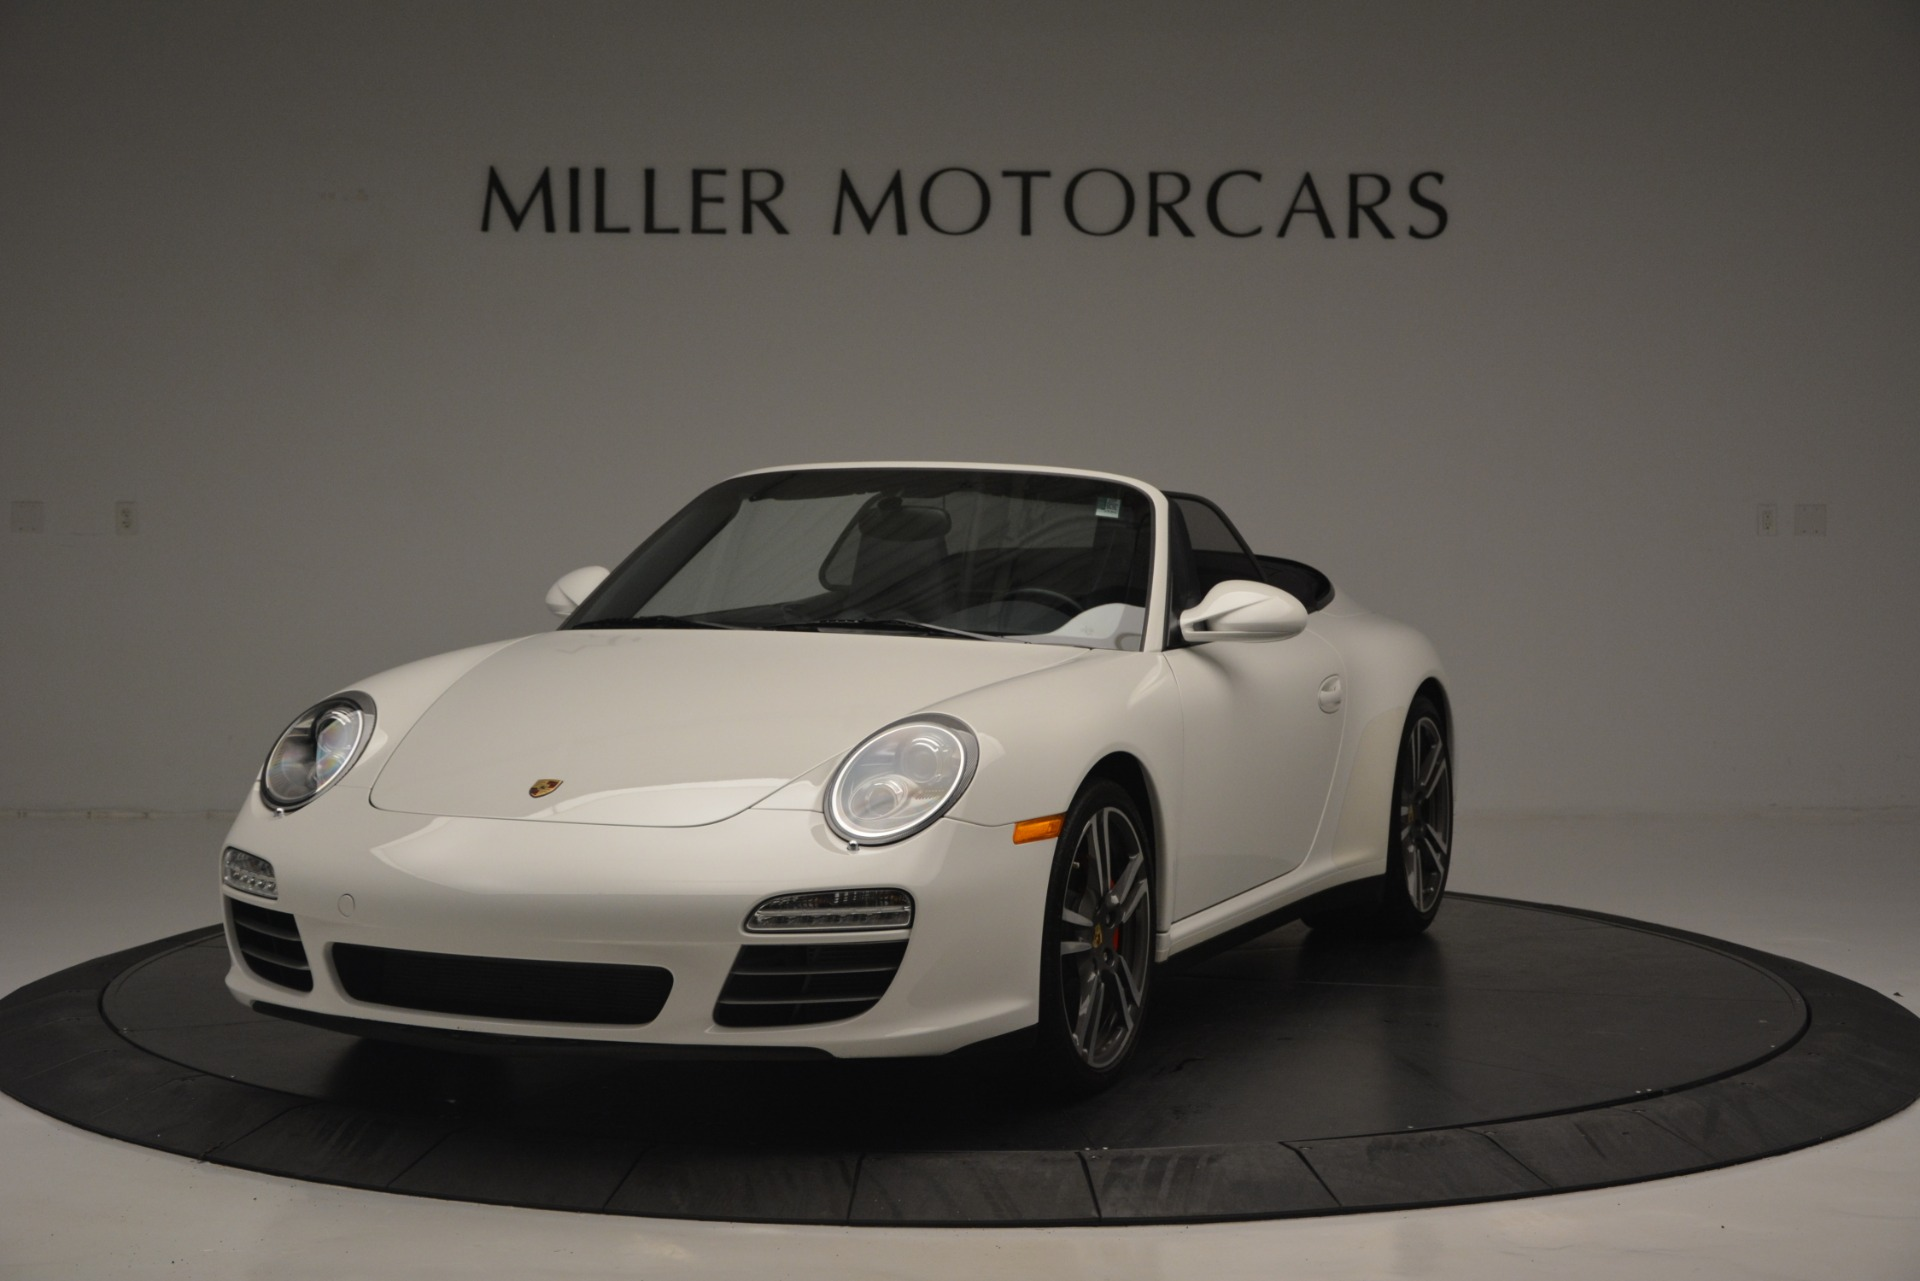 Used 2011 Porsche 911 Carrera 4S for sale Sold at Rolls-Royce Motor Cars Greenwich in Greenwich CT 06830 1